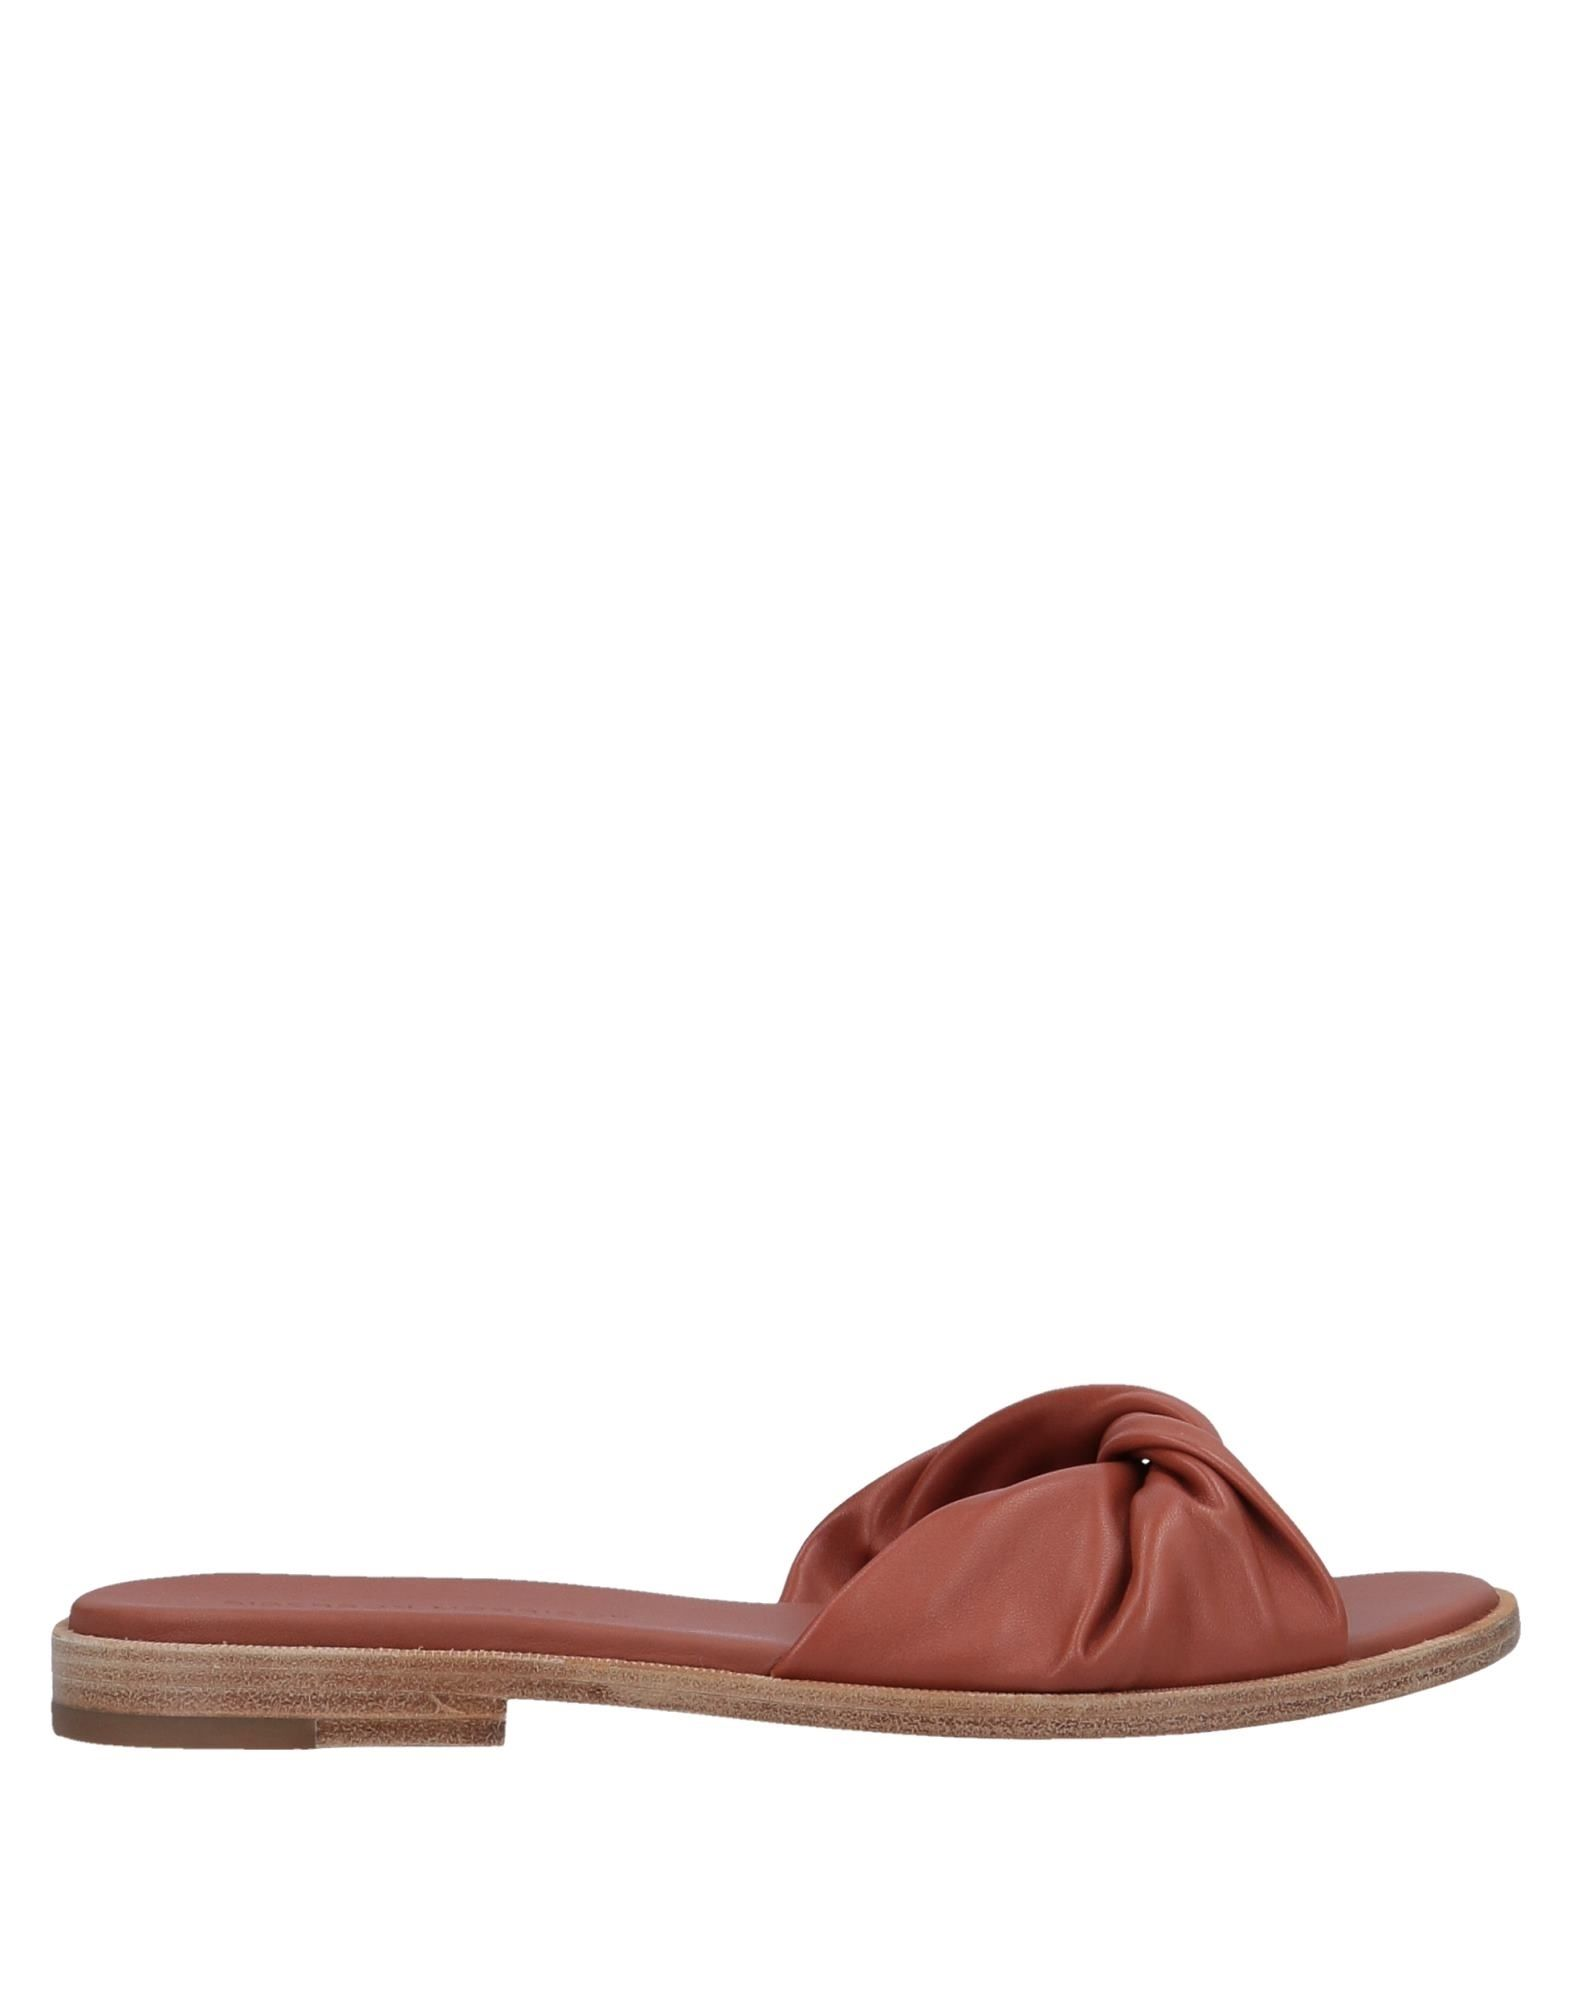 SIGERSON MORRISON Sandals - Item 11564845